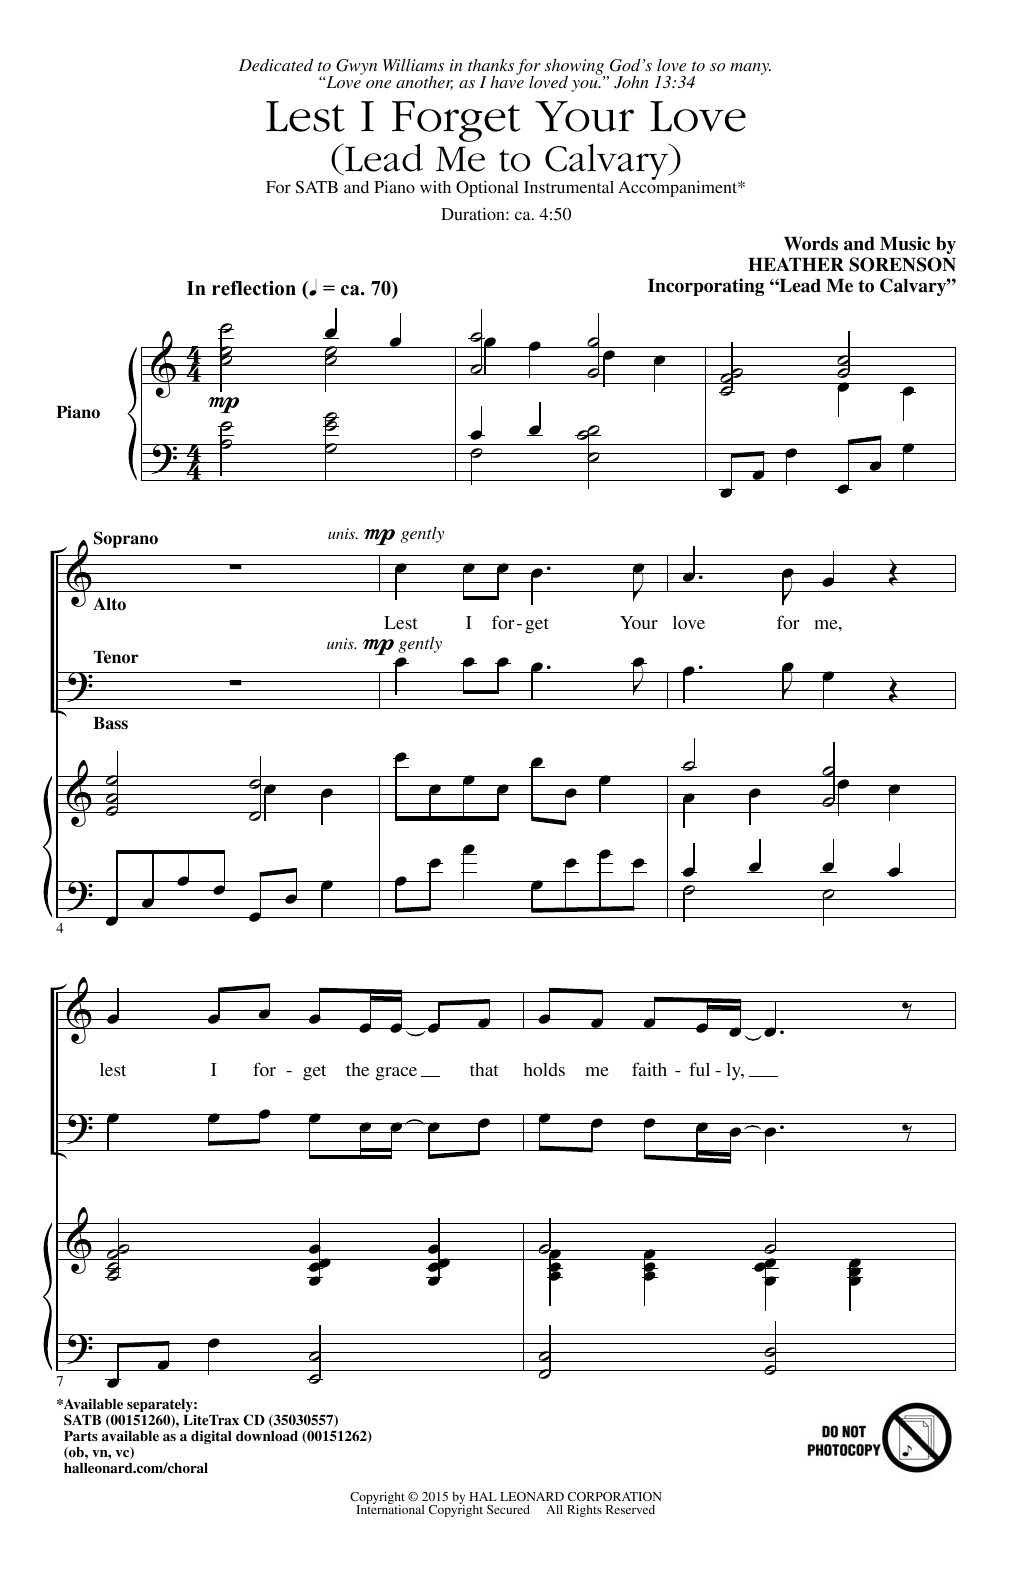 Lest I Forget Your Love (Lead Me To Calvary) Sheet Music